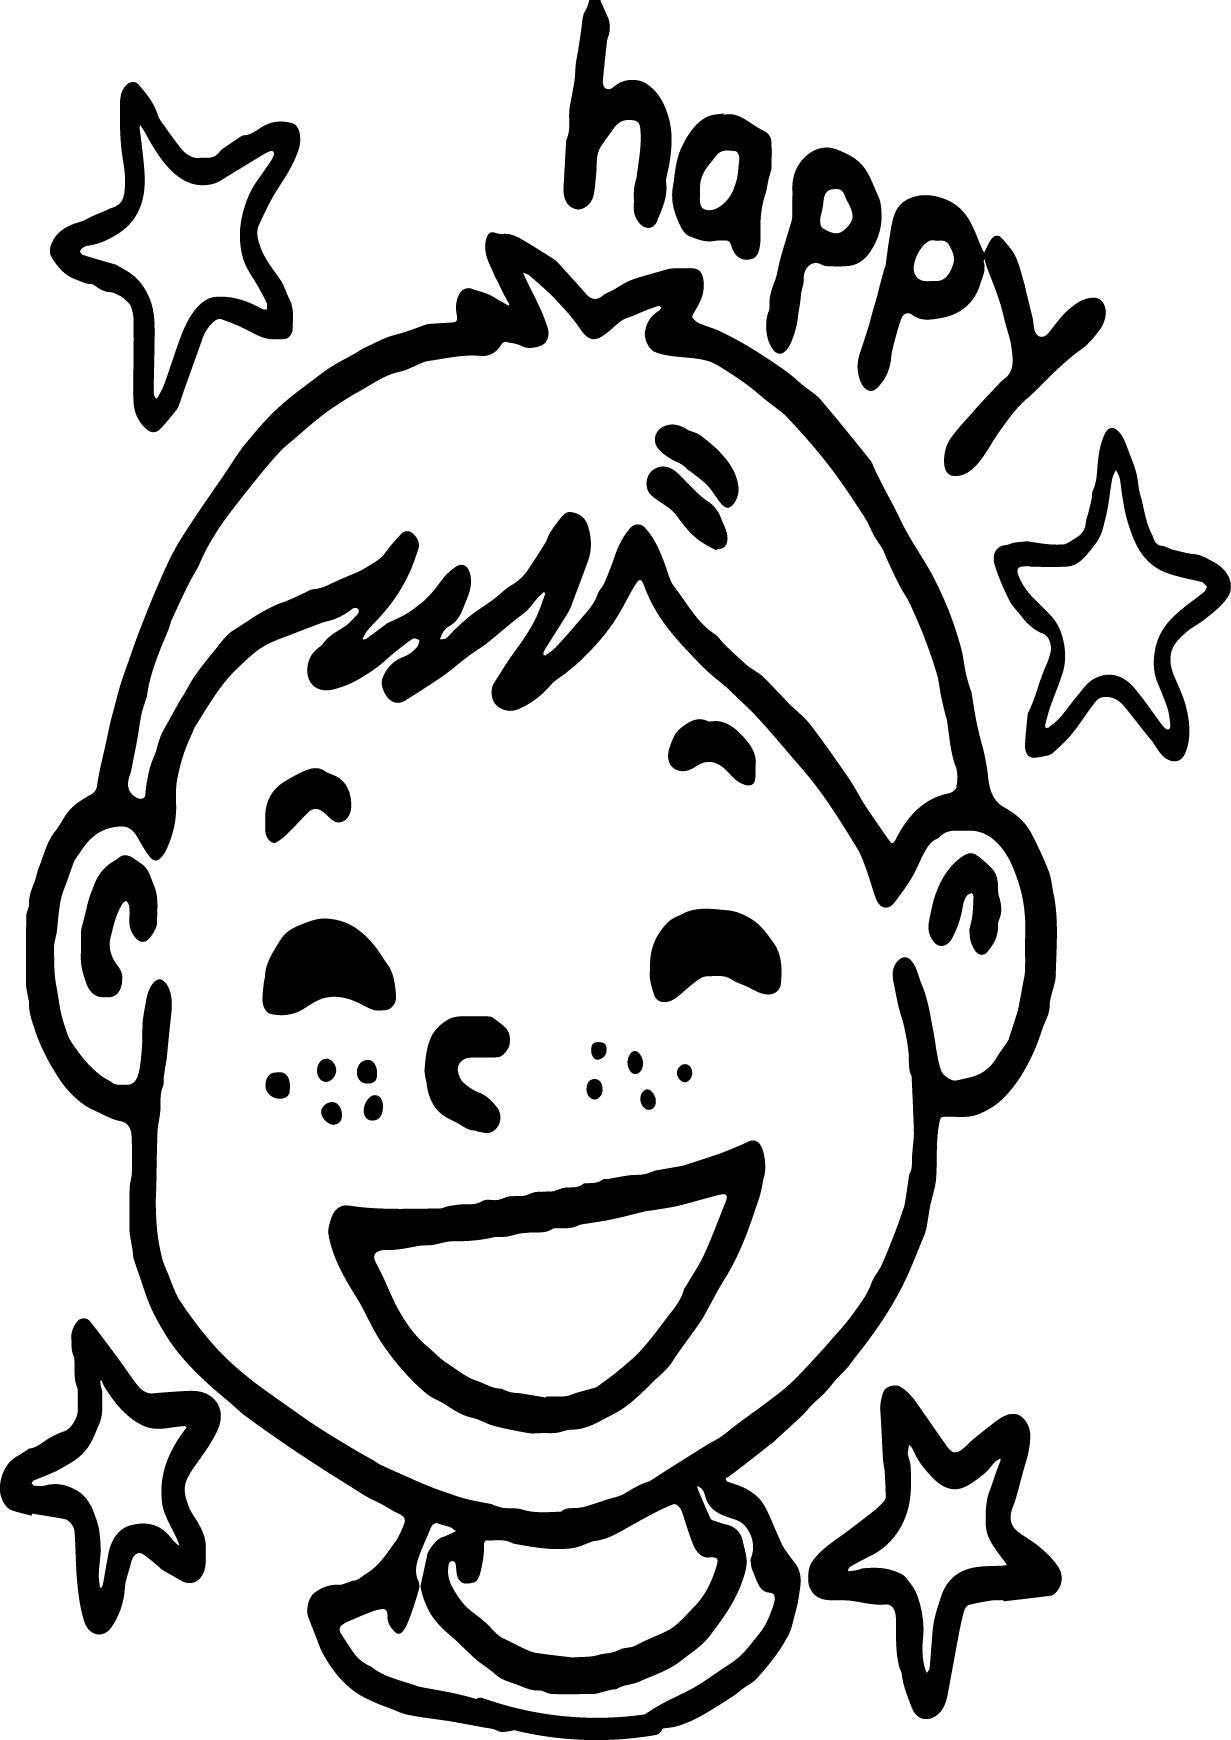 Activity Village Keeping Happy Kids Busy Coloring Page